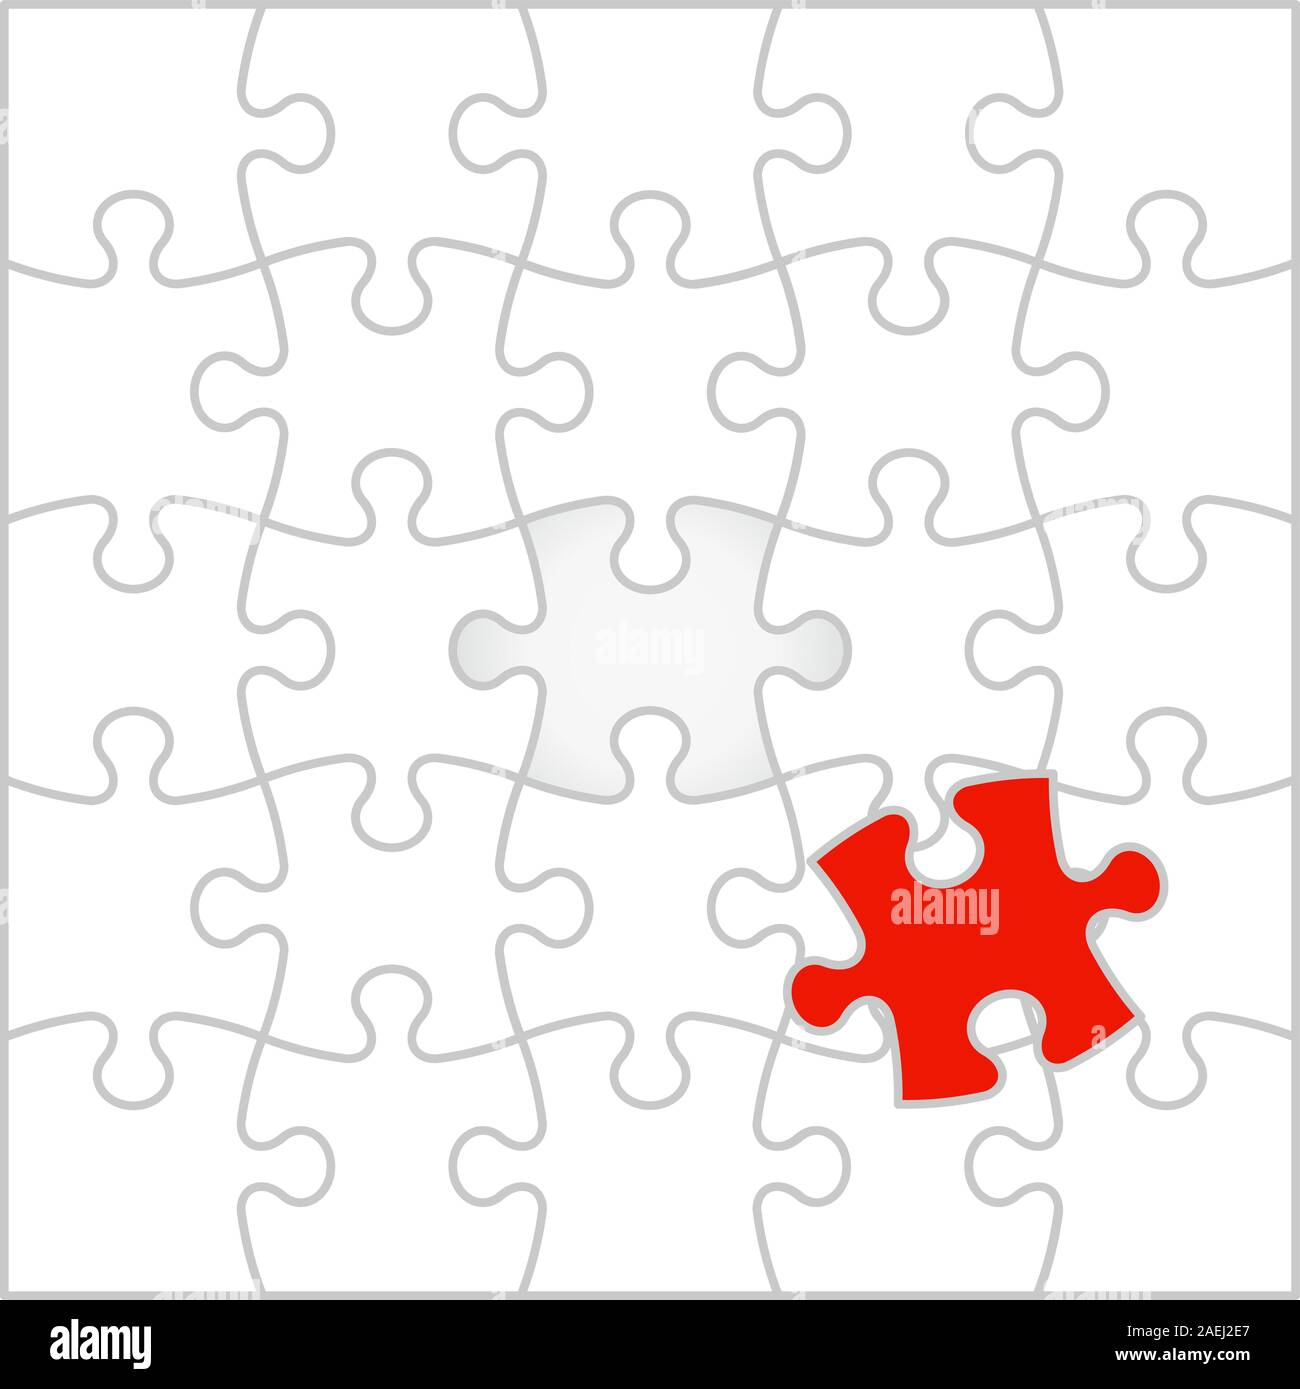 Background Vector Illustration jigsaw puzzle Stock Vector